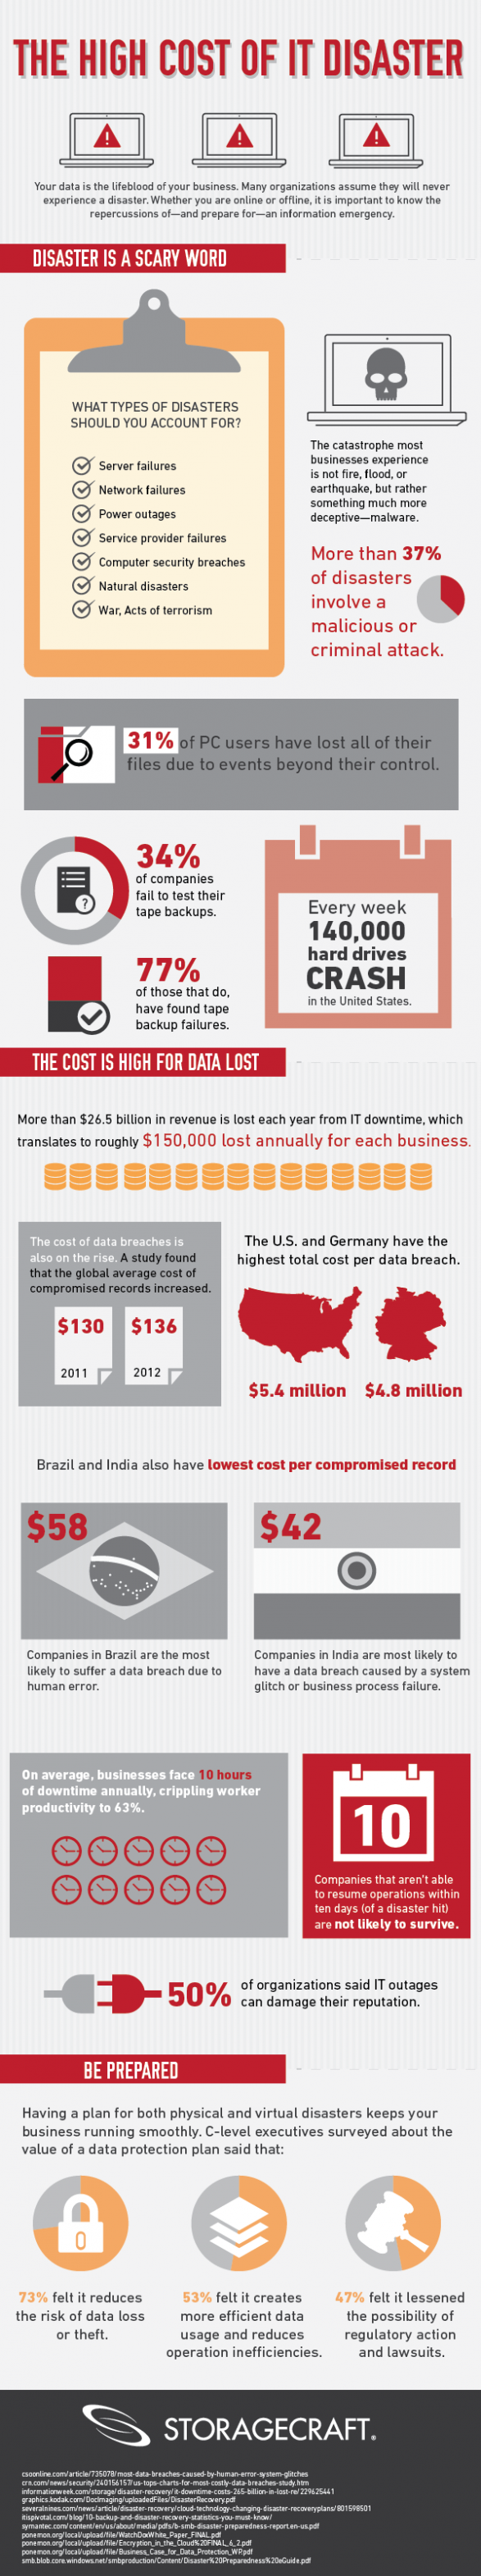 The High Cost of IT Disaster